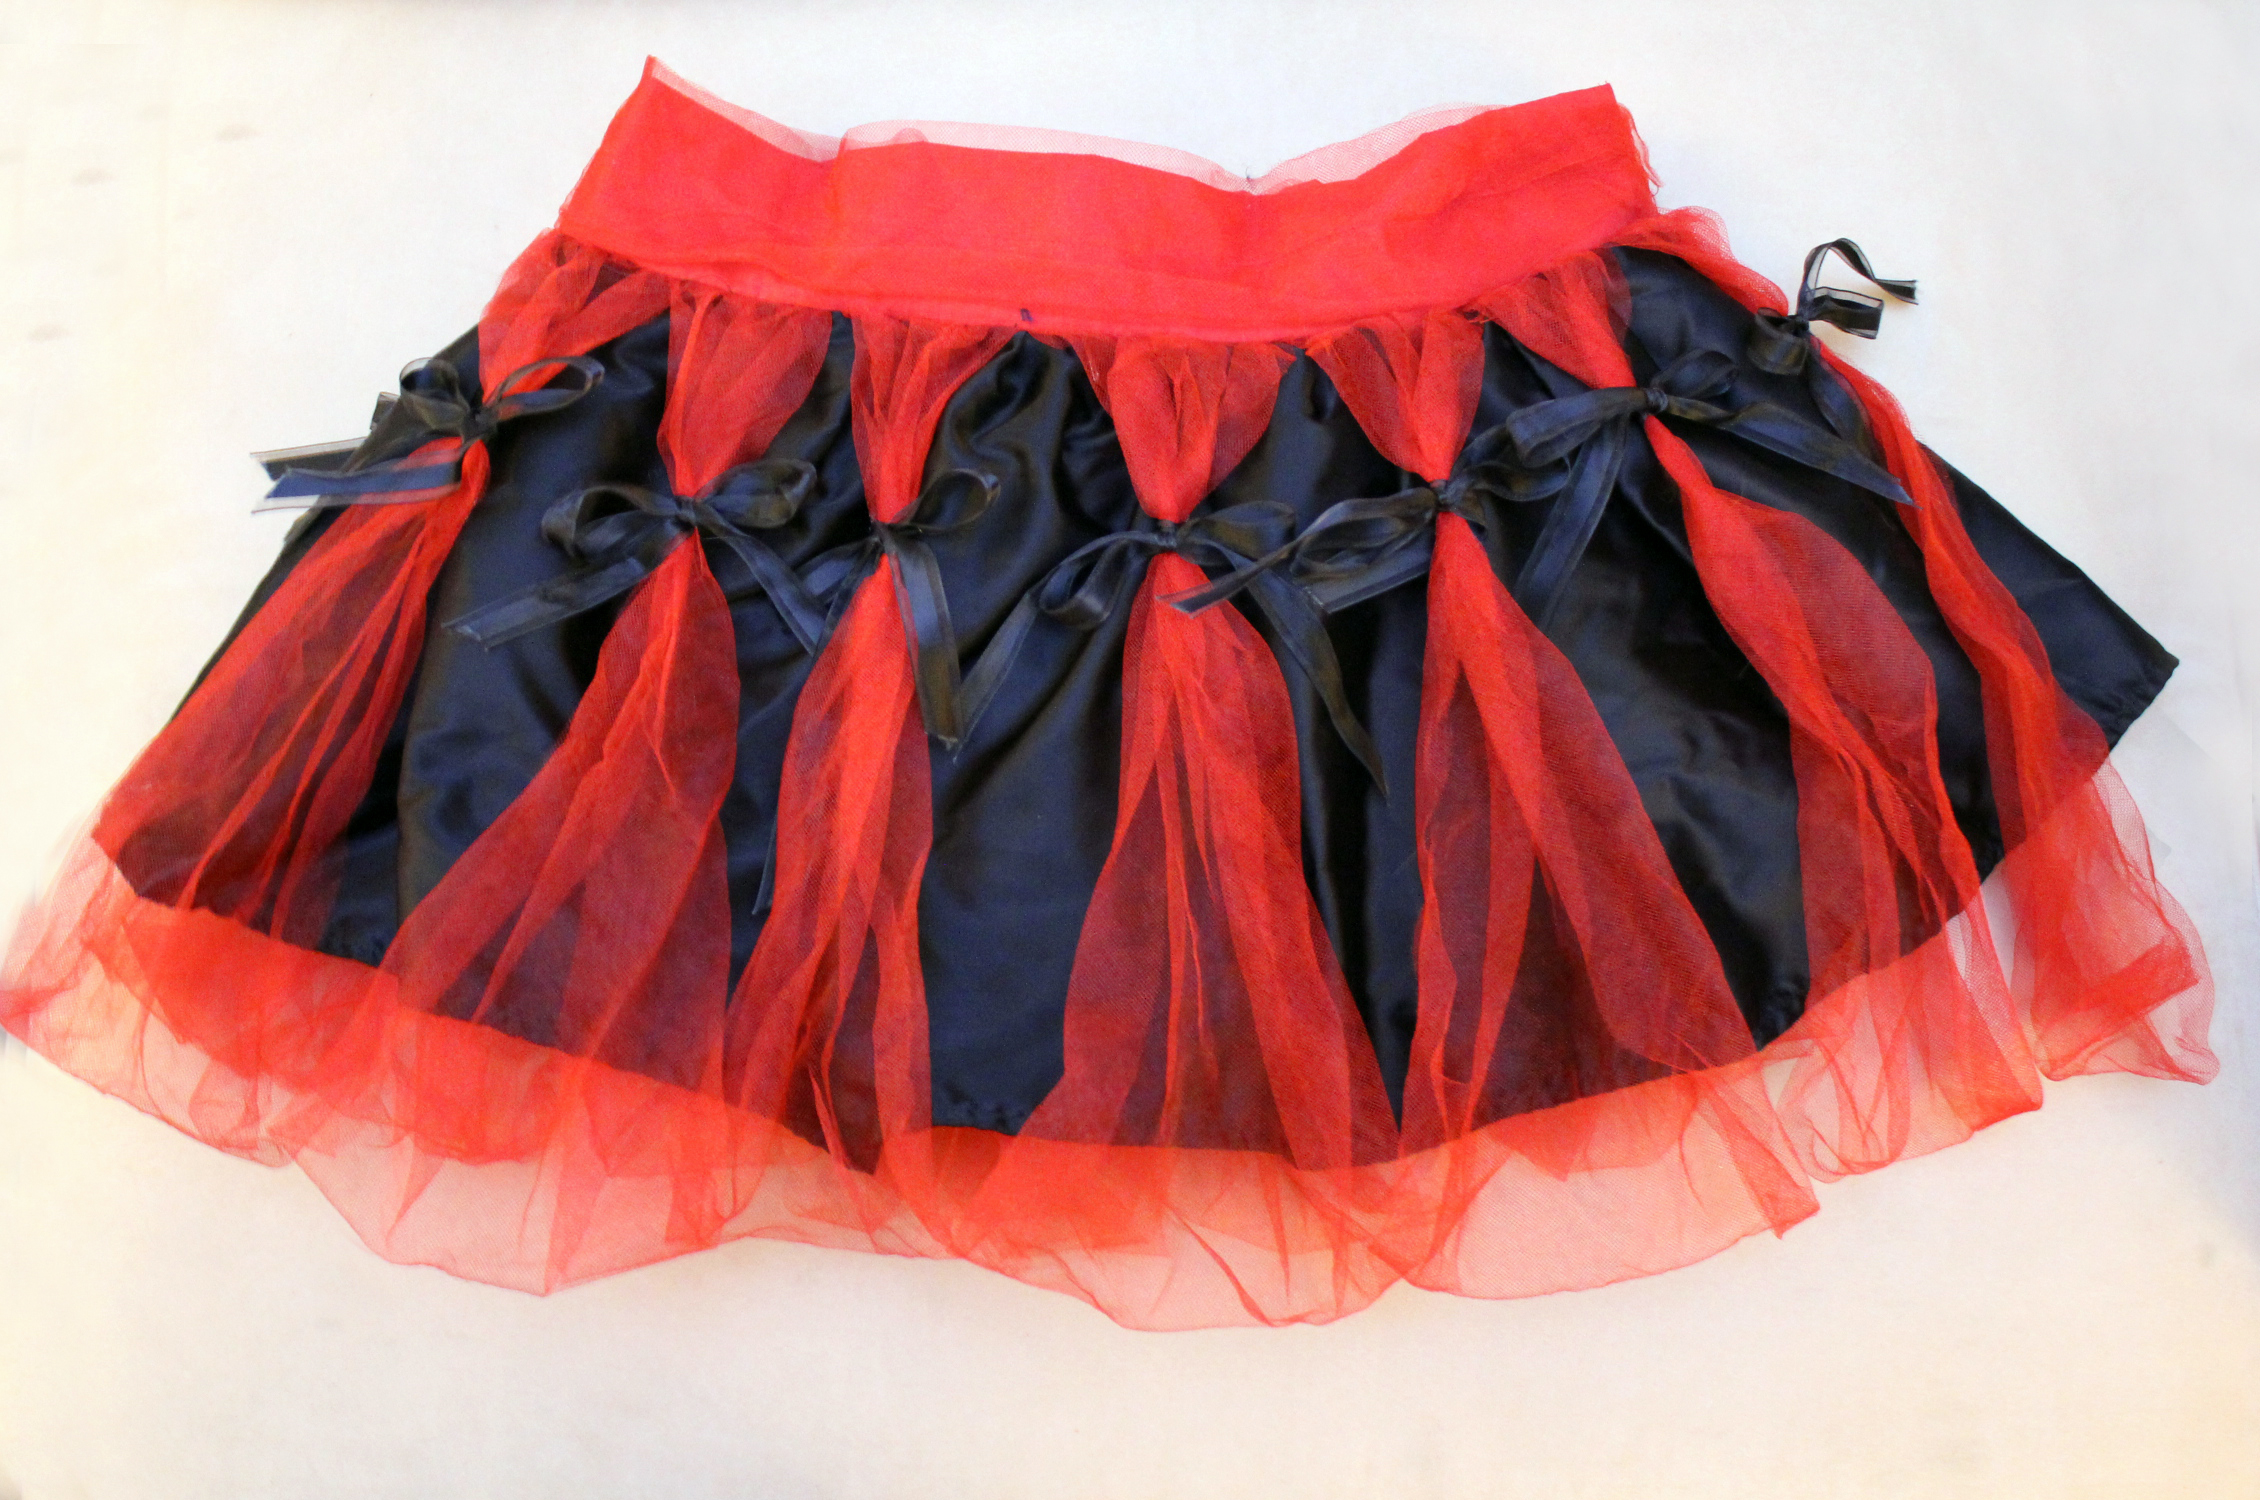 Alternative Cosplay Fashion Red Black Tutu Tulle Skirt With Satin Sheer Bows